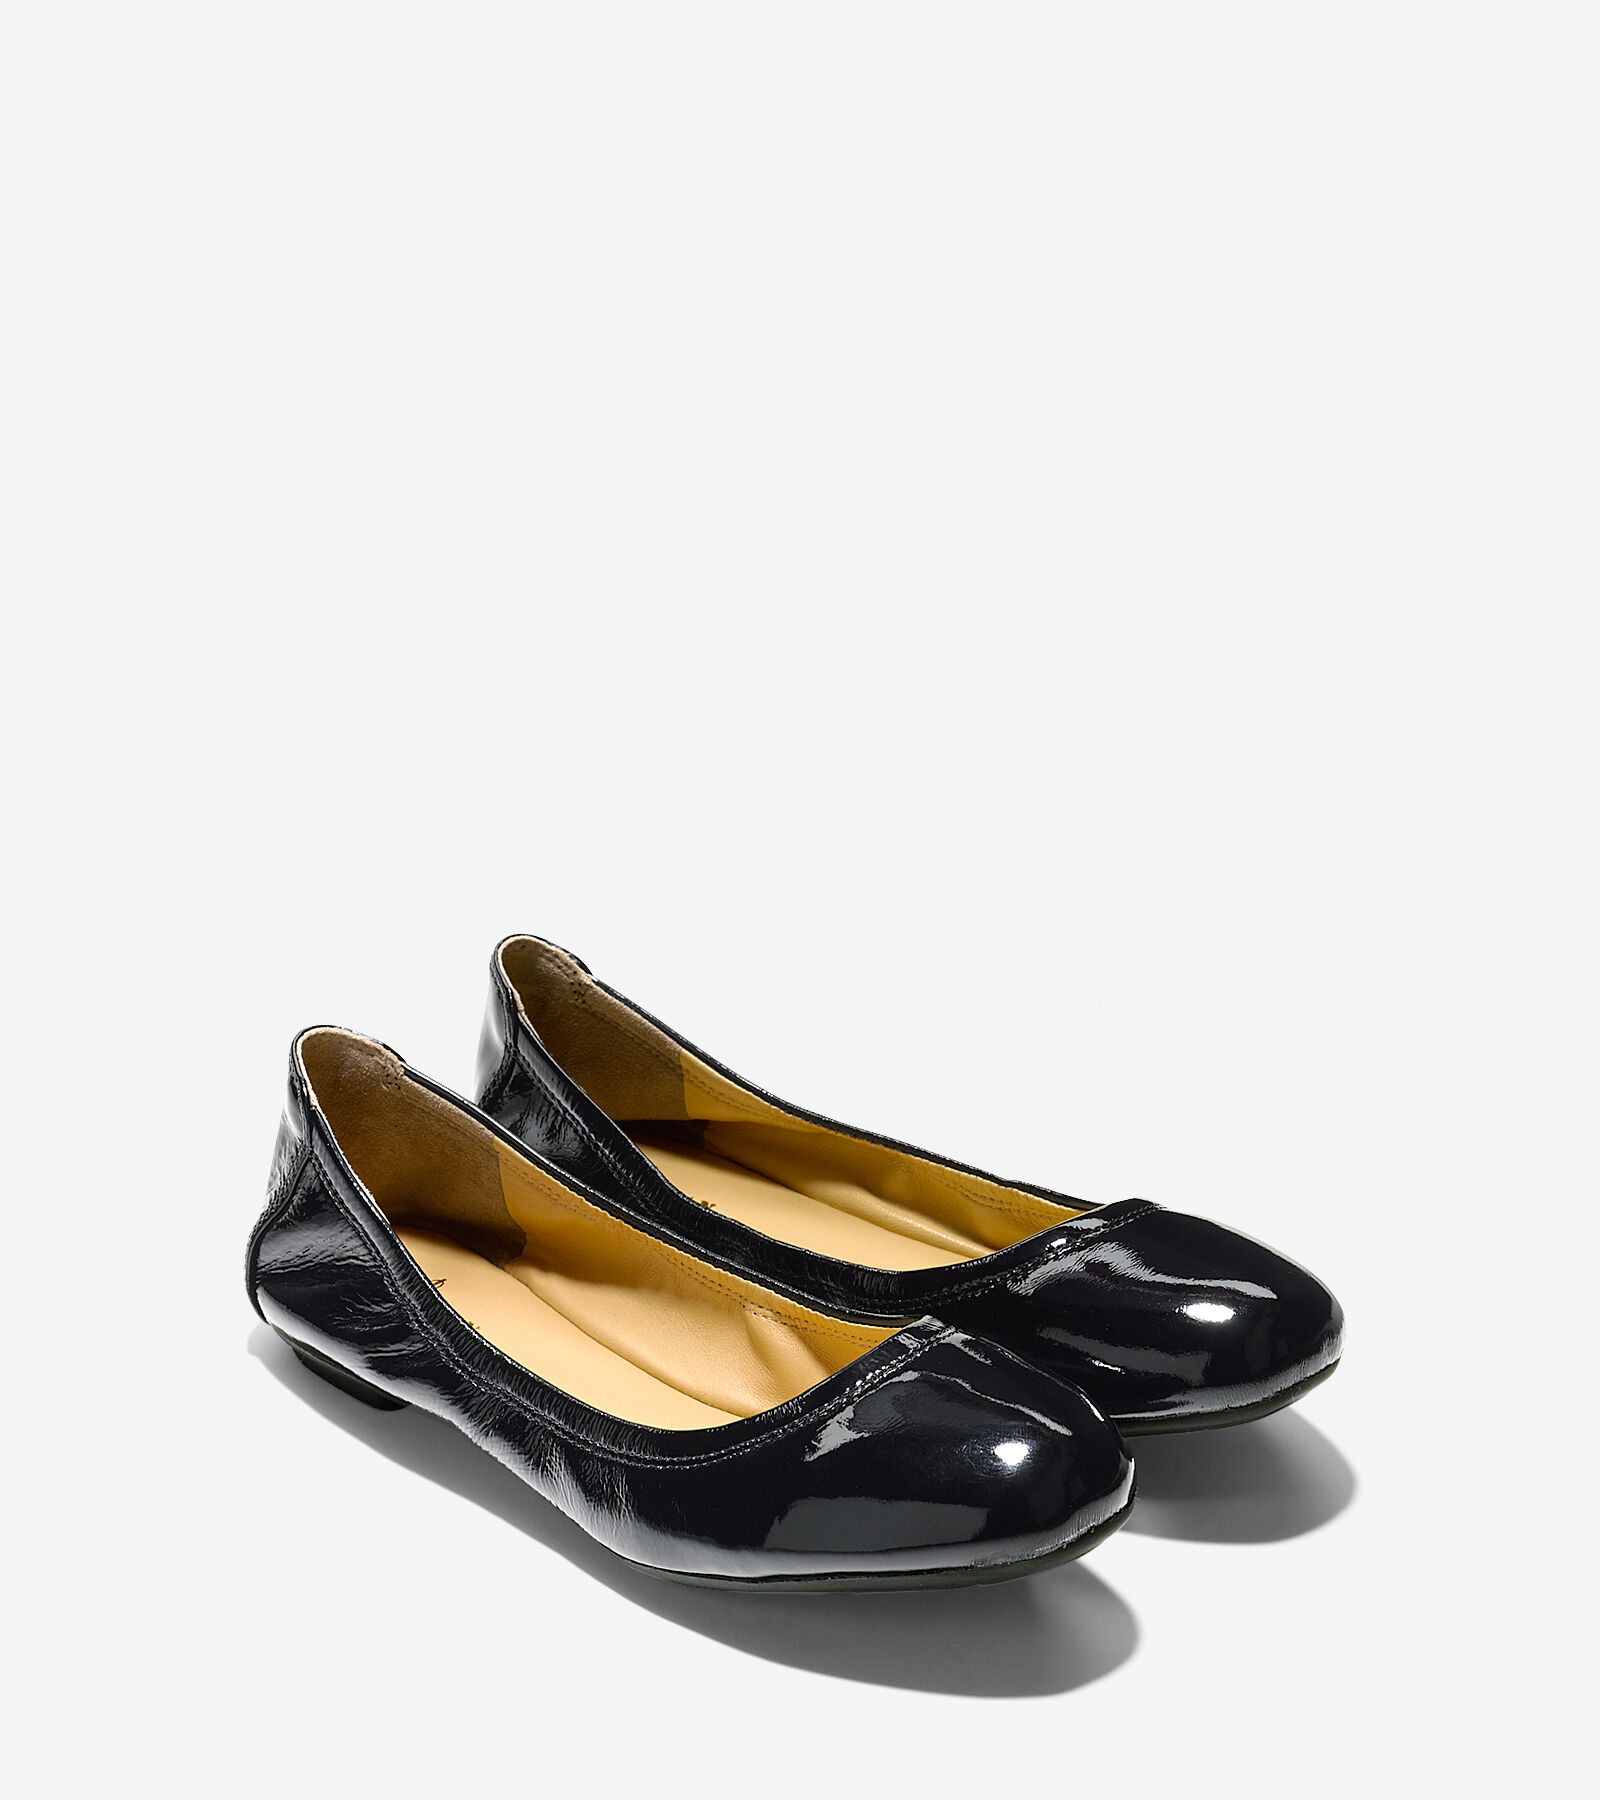 Cole Haan Leather Flats Wiki Online Outlet Clearance Outlet Release Dates 9ecpBPR